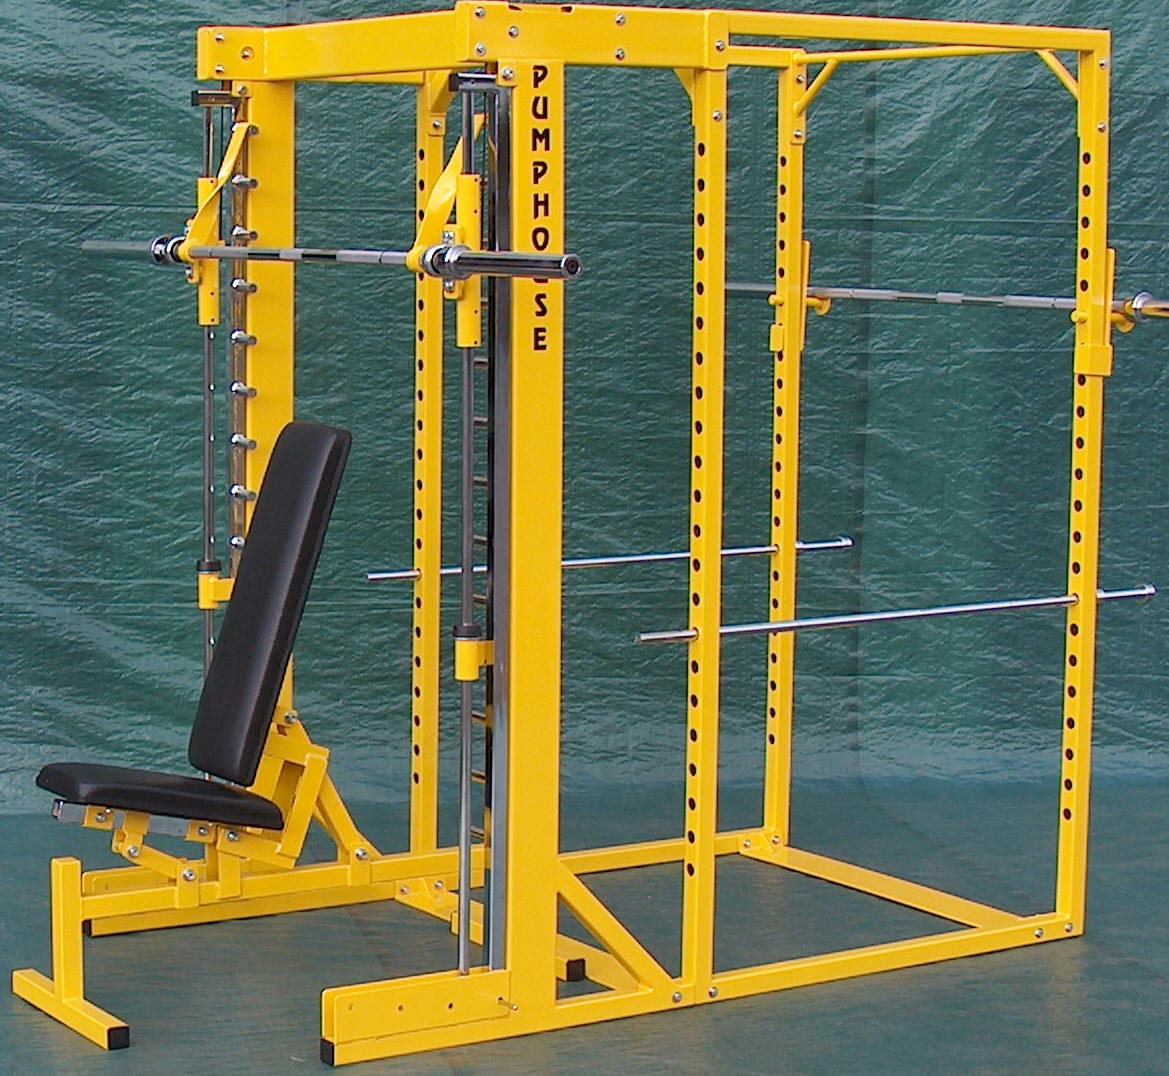 SQUAT CAGES AND POWER RACKS